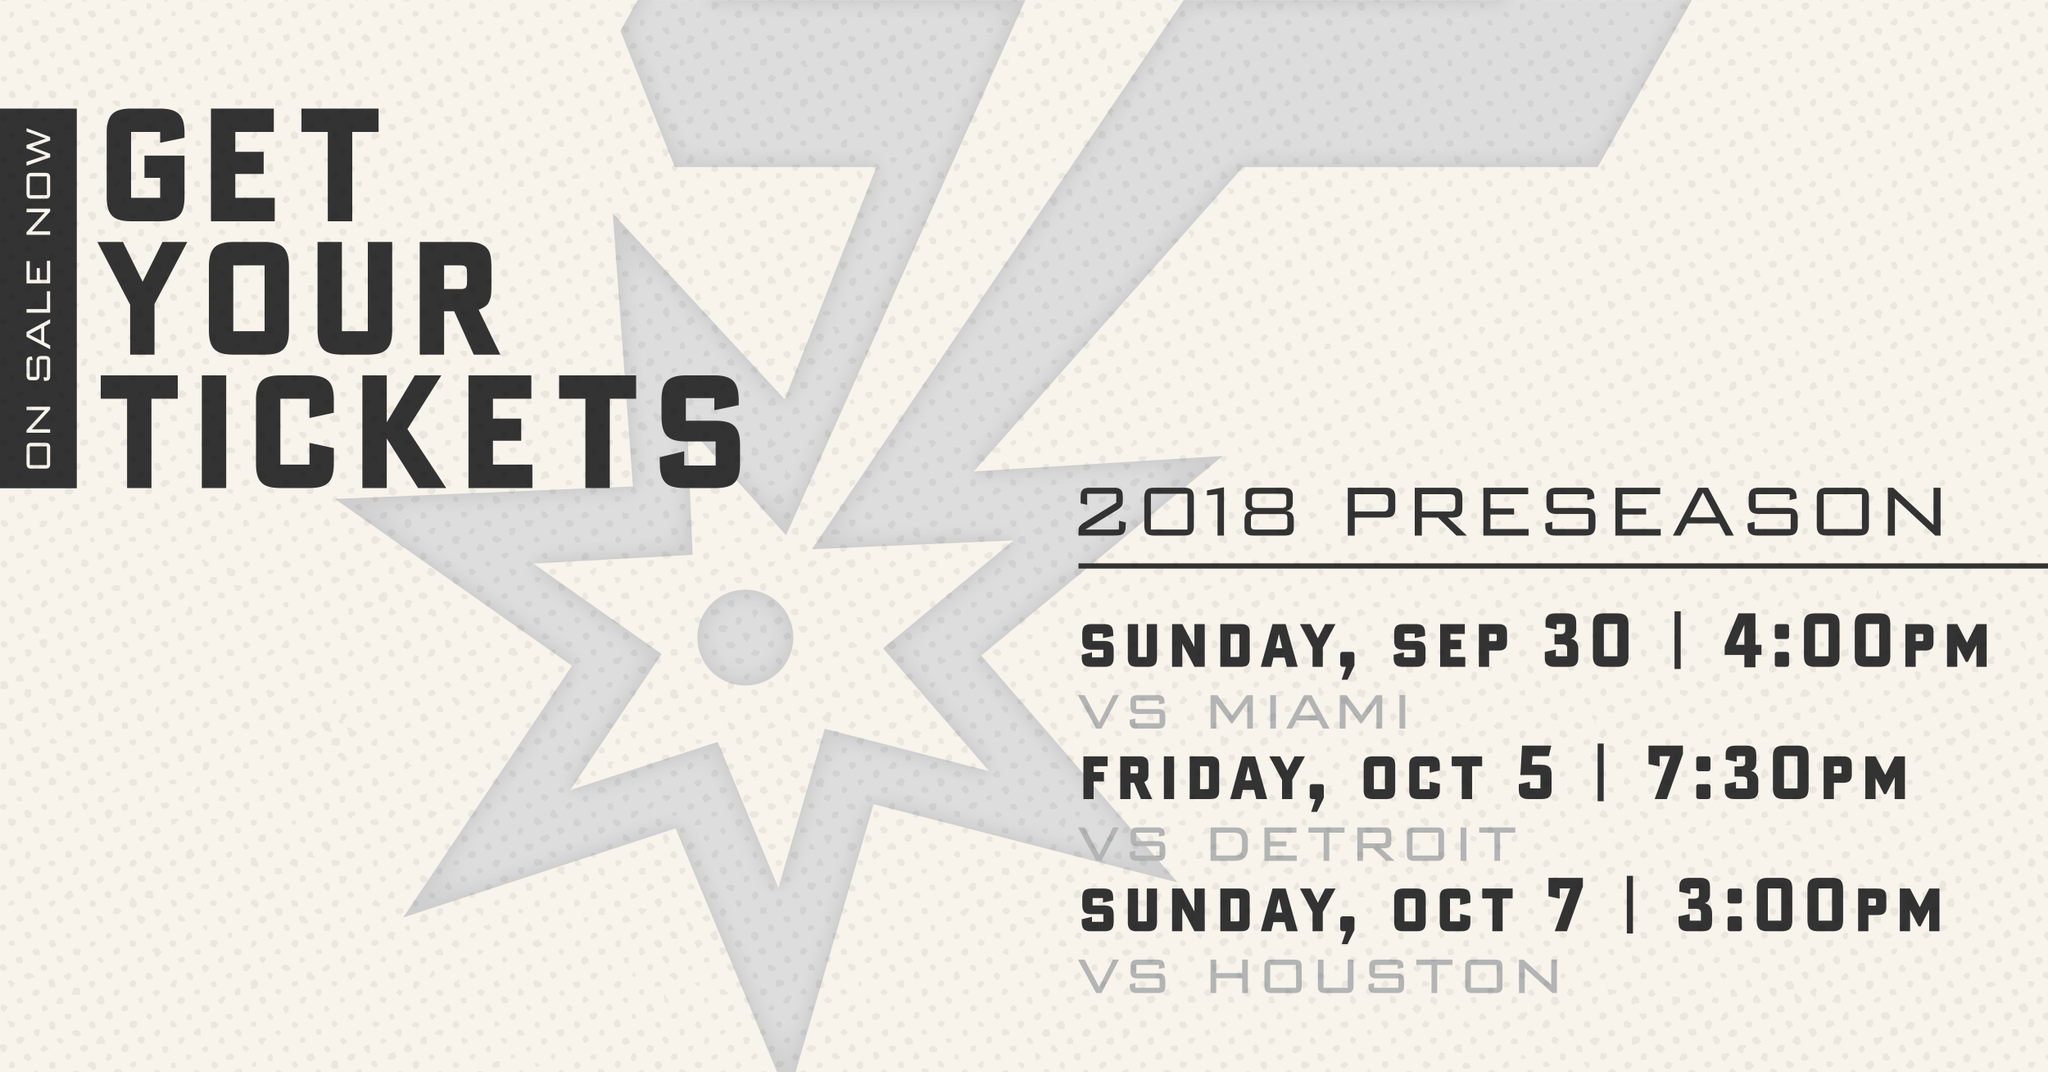 2018 Spurs Preseason Tickets are on sale now! ��   More: https://t.co/MxKpWejNtN https://t.co/Rn2Vl1LJ19